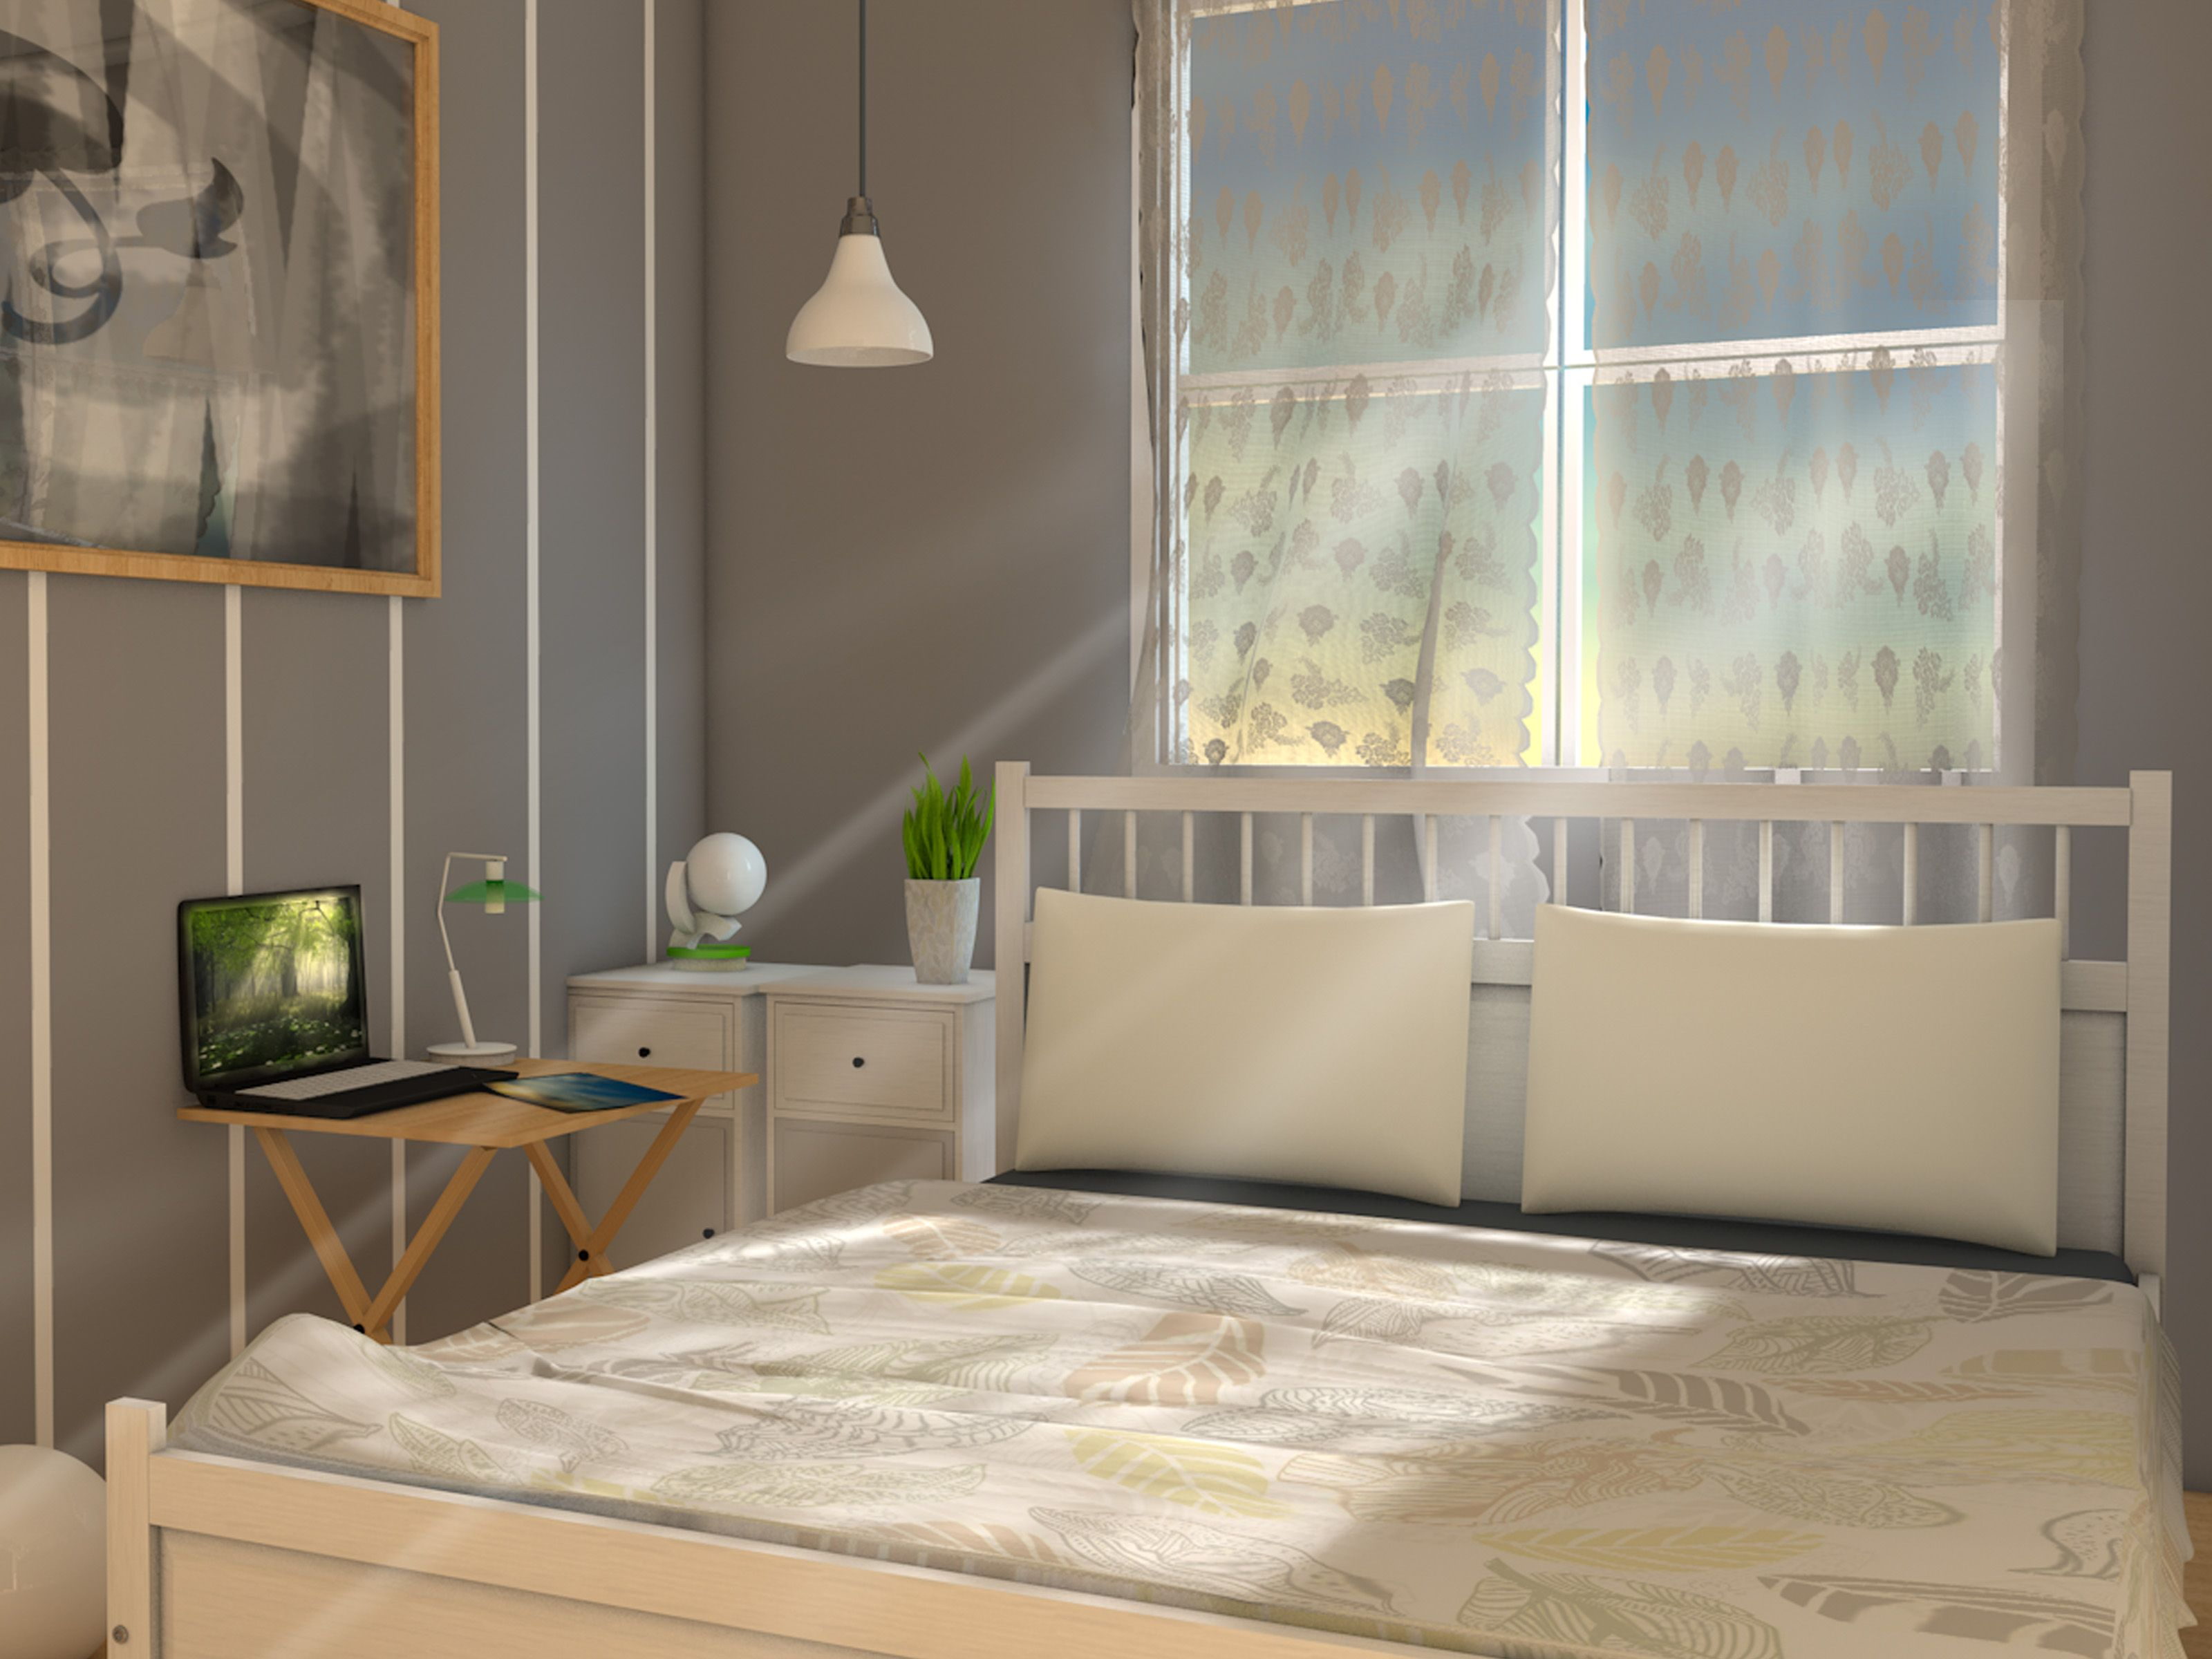 Bedroom Pendant Light Glass Window Wooden Side Table White Sidebed